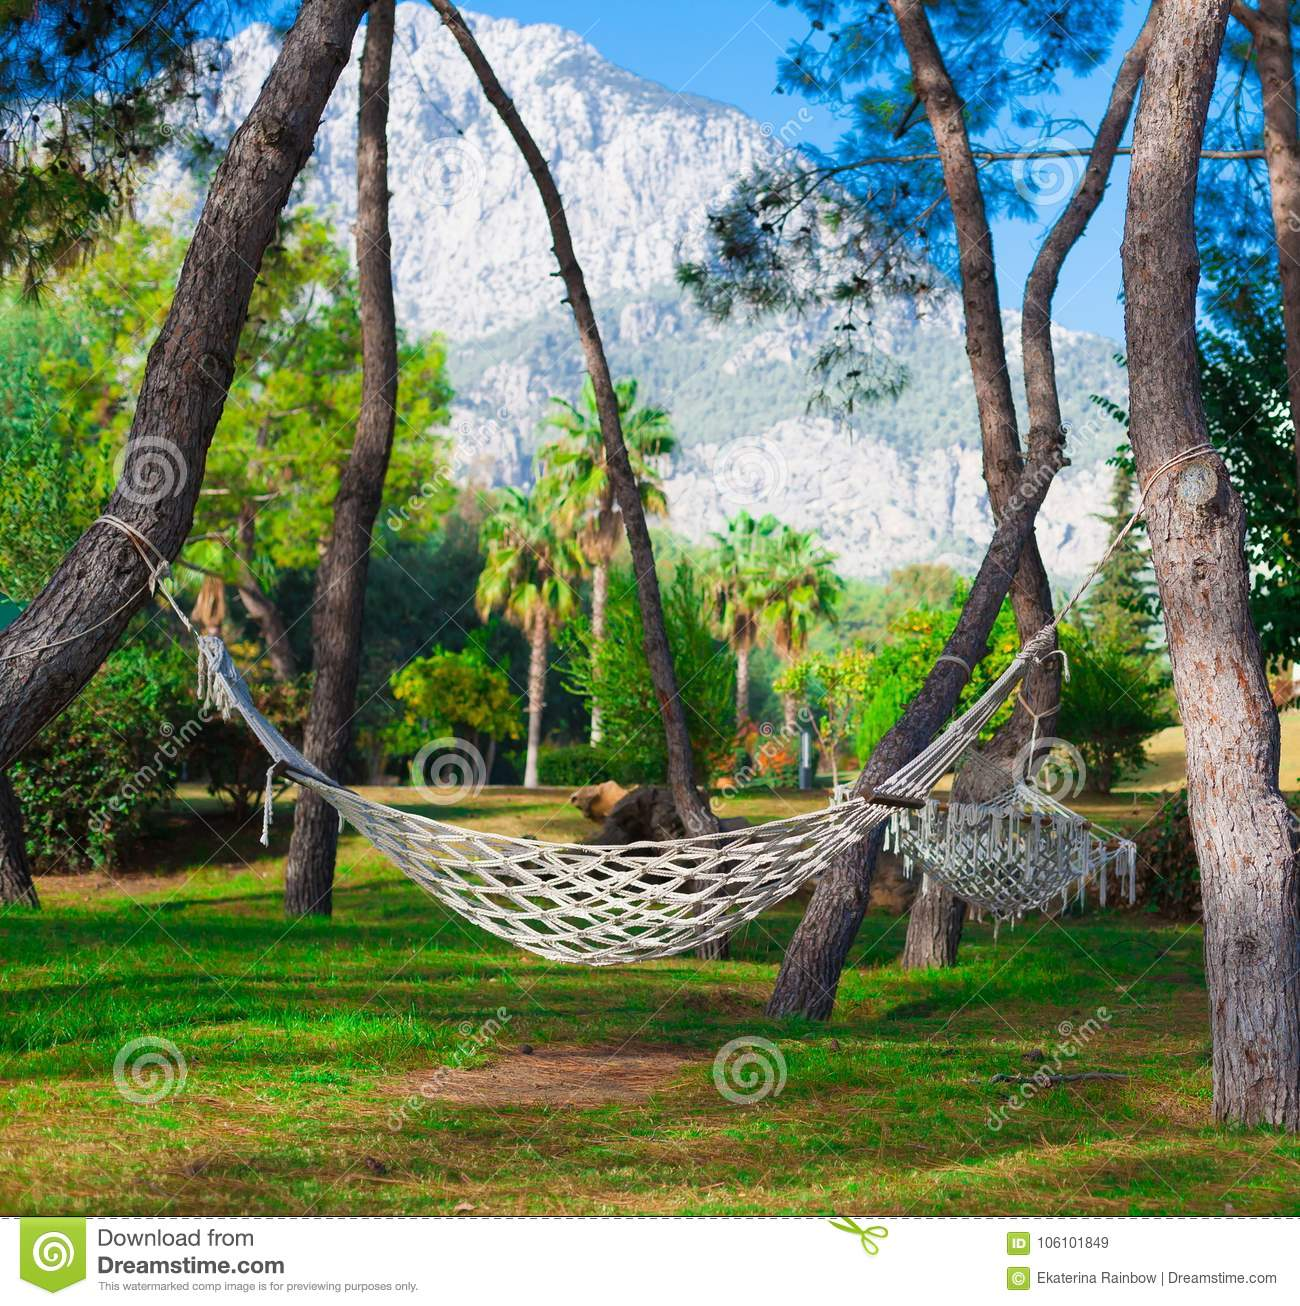 Turkey, Hammock In Tropical Garden Stock Image - Image of idyll ...